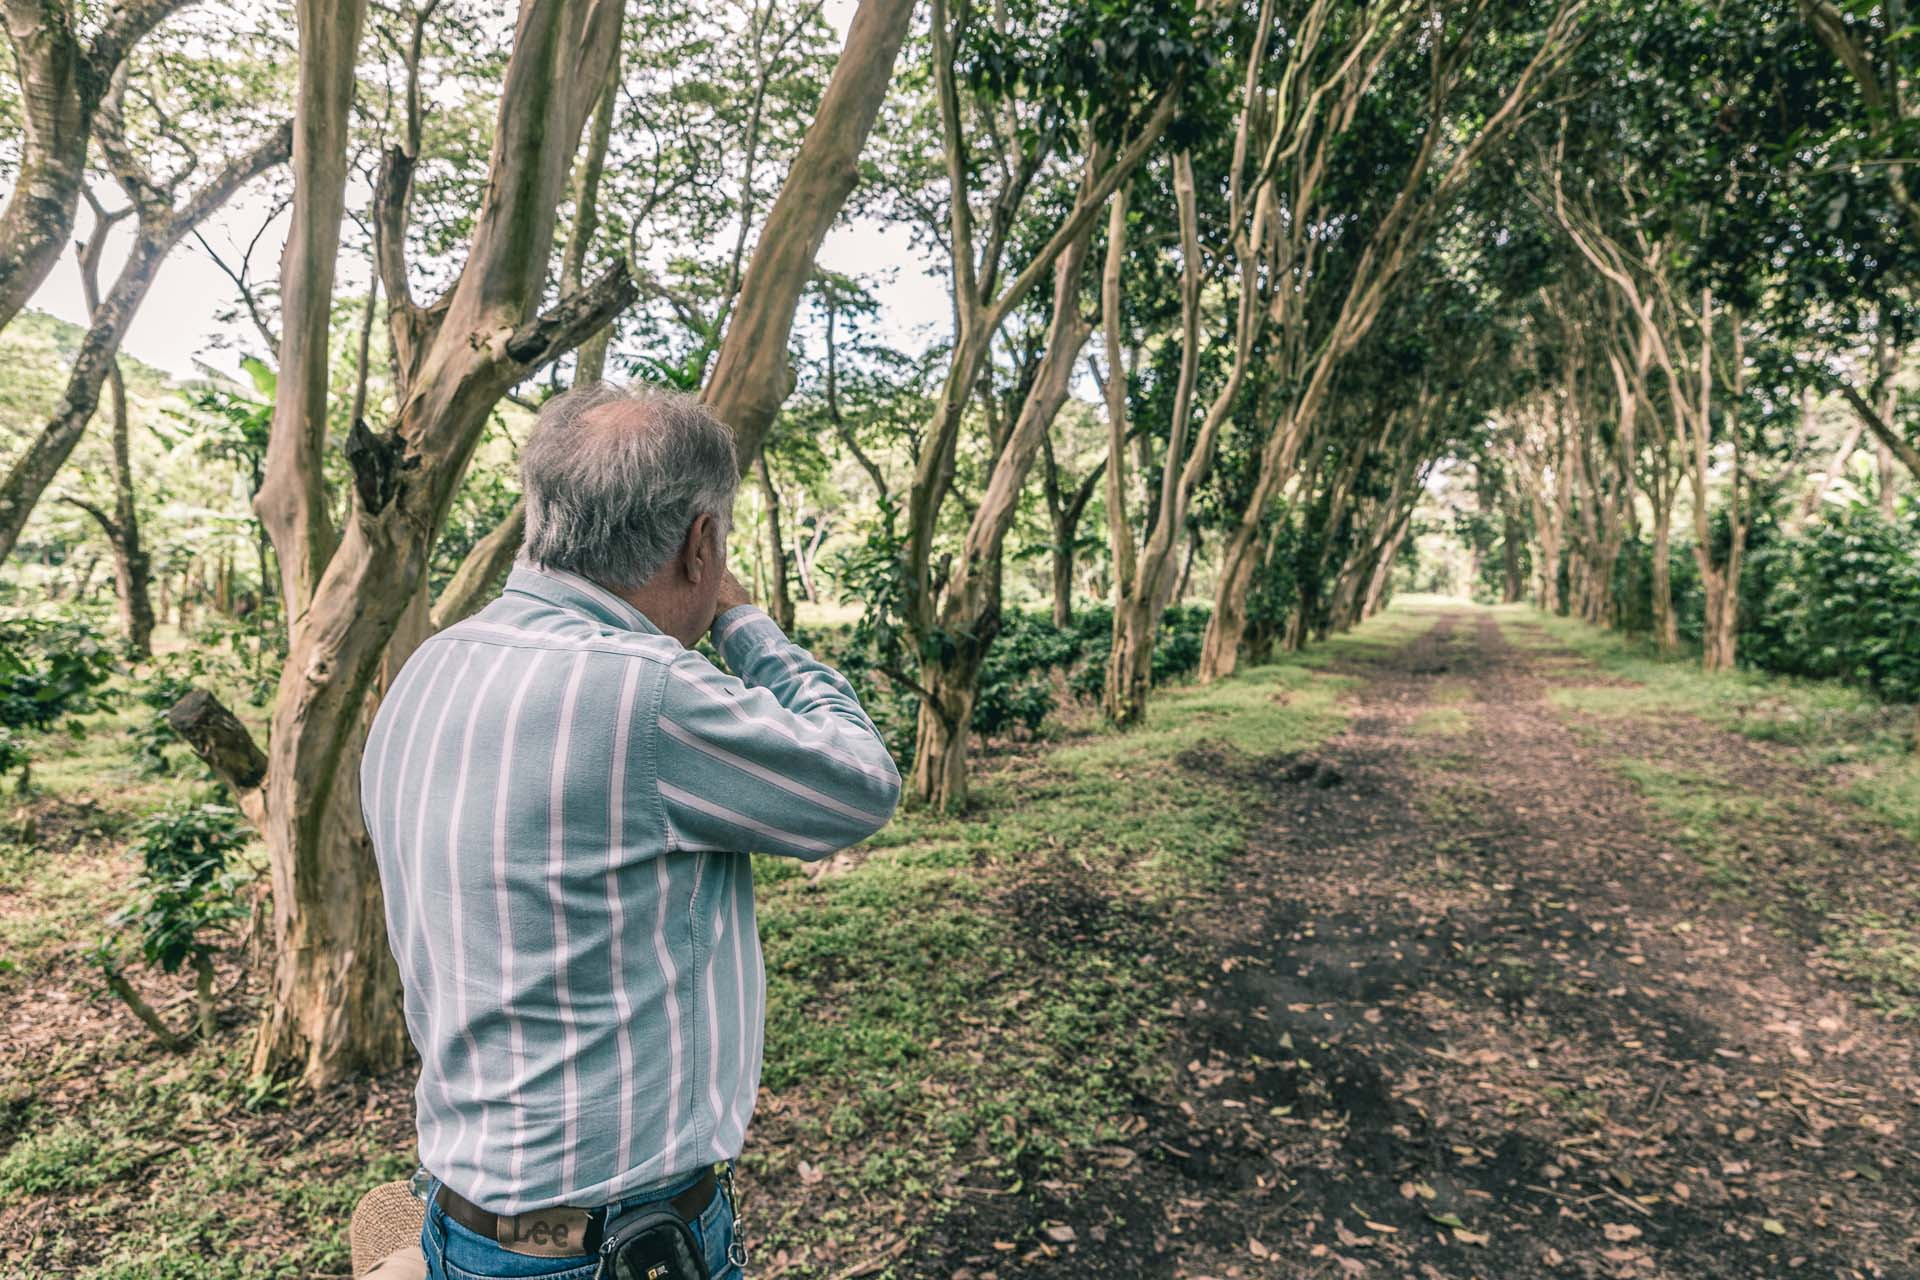 After Atitlan we visited the coffee farm San Jose La Laguna Estate. Here the owner, Roberto, looks down memory lane.